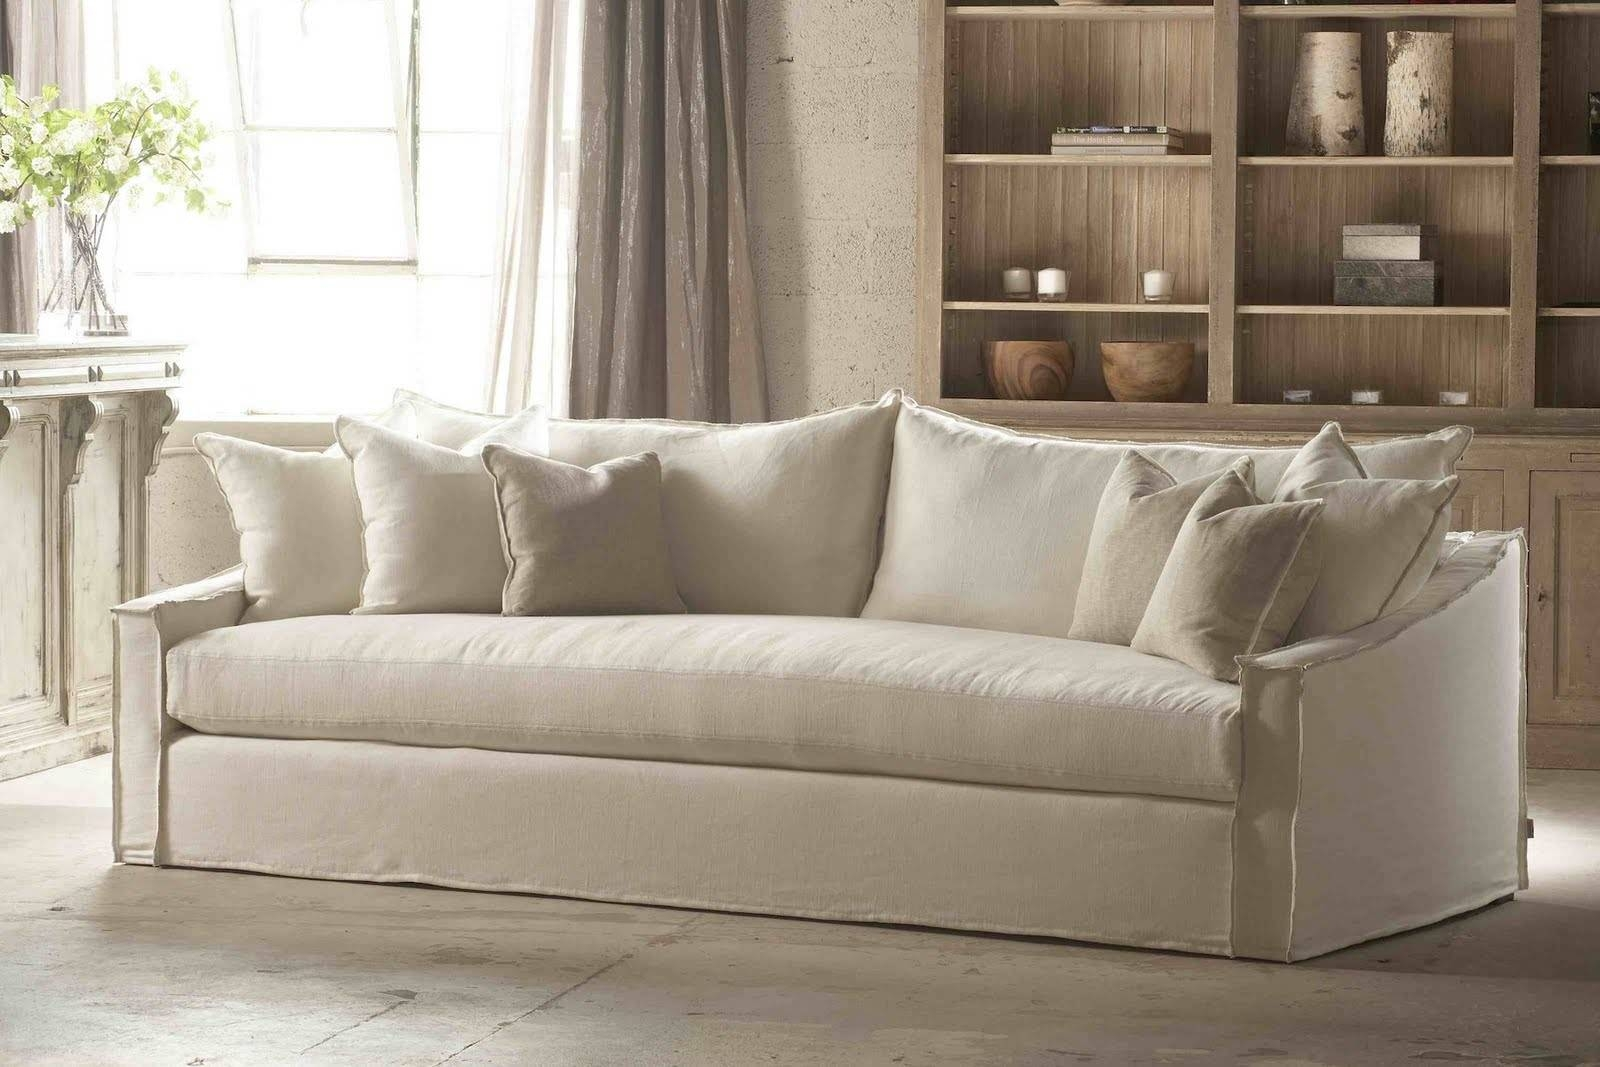 15 Inspirations Of Canvas Slipcover Sofas ~ White Slipcovers For Sofa